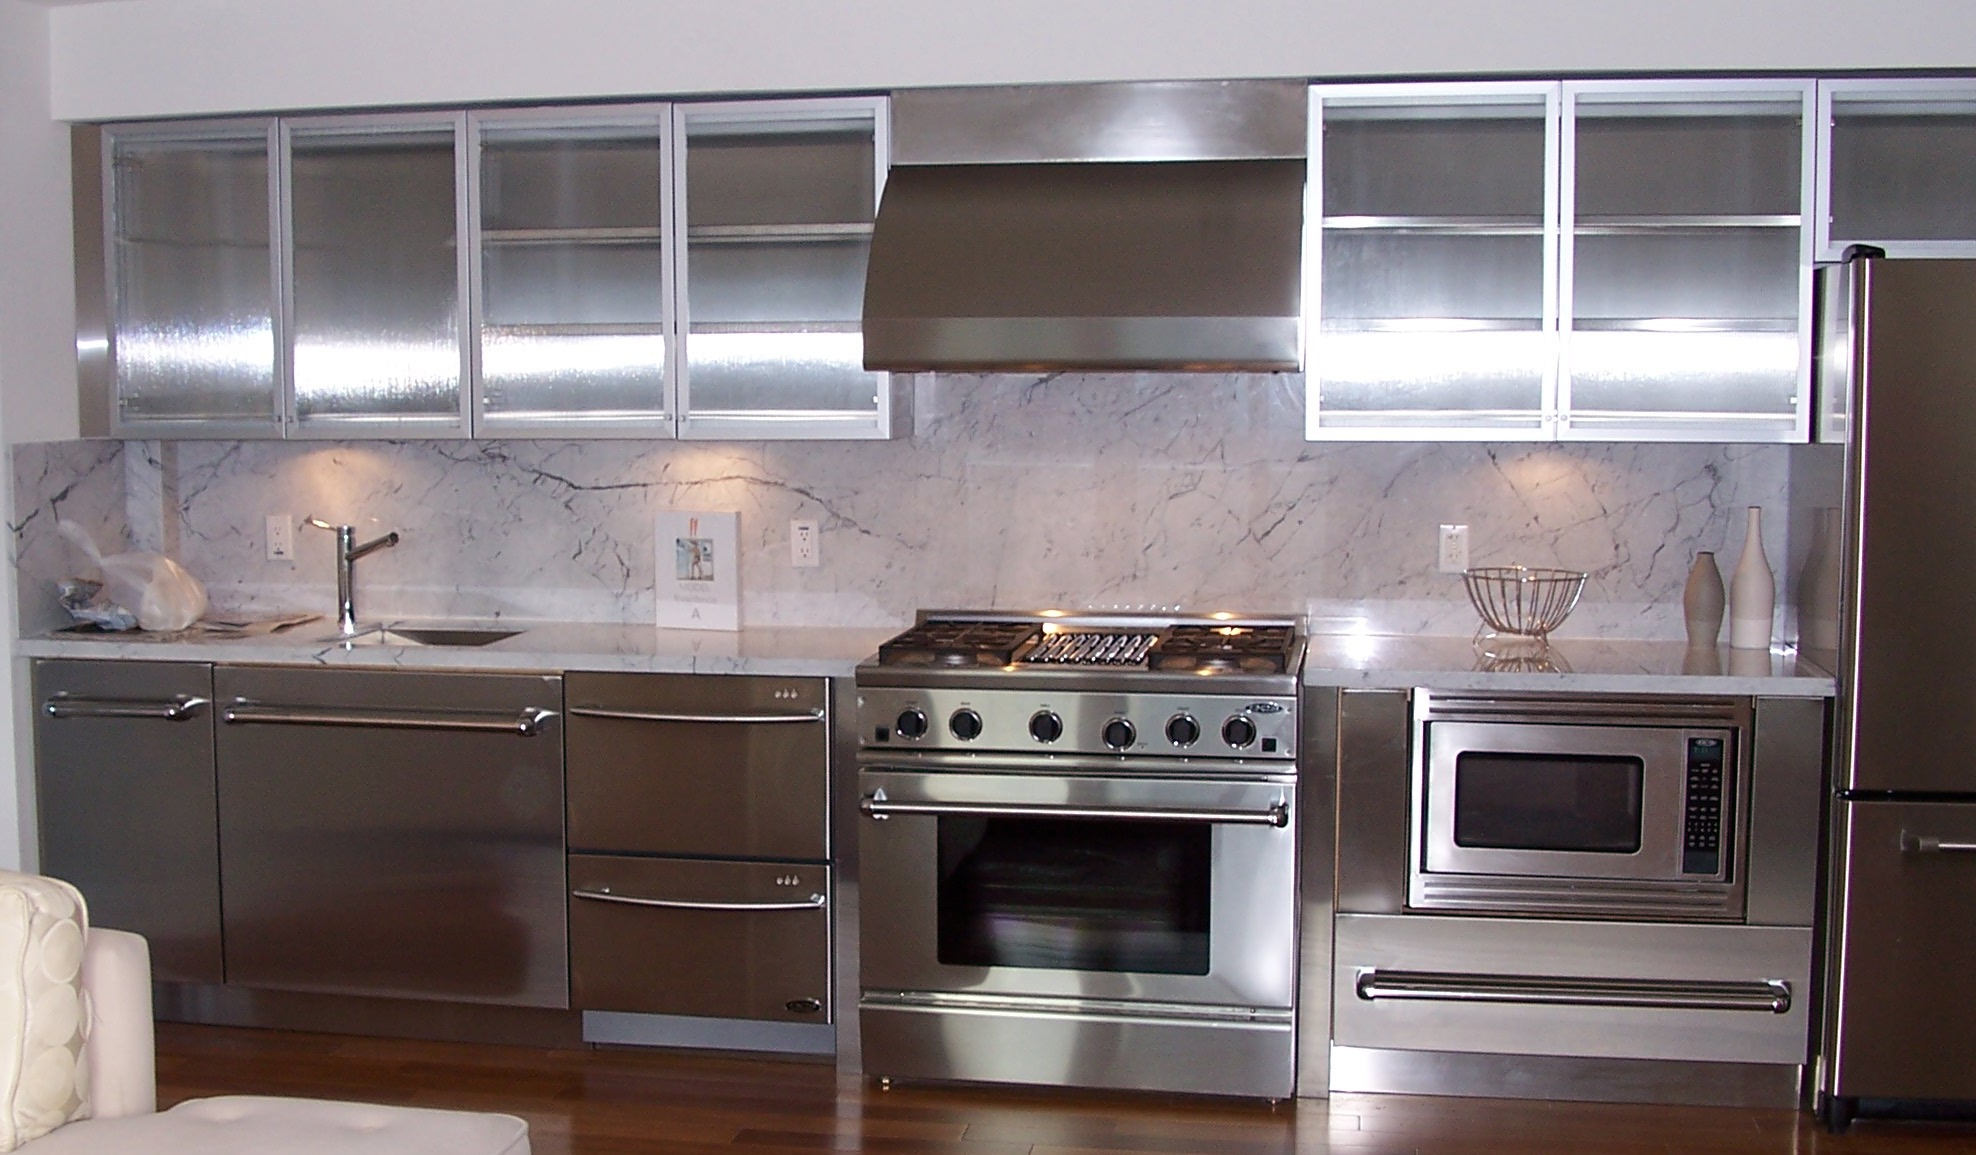 Stainless Steel Cabinets For Kitchen Veterinariancolleges